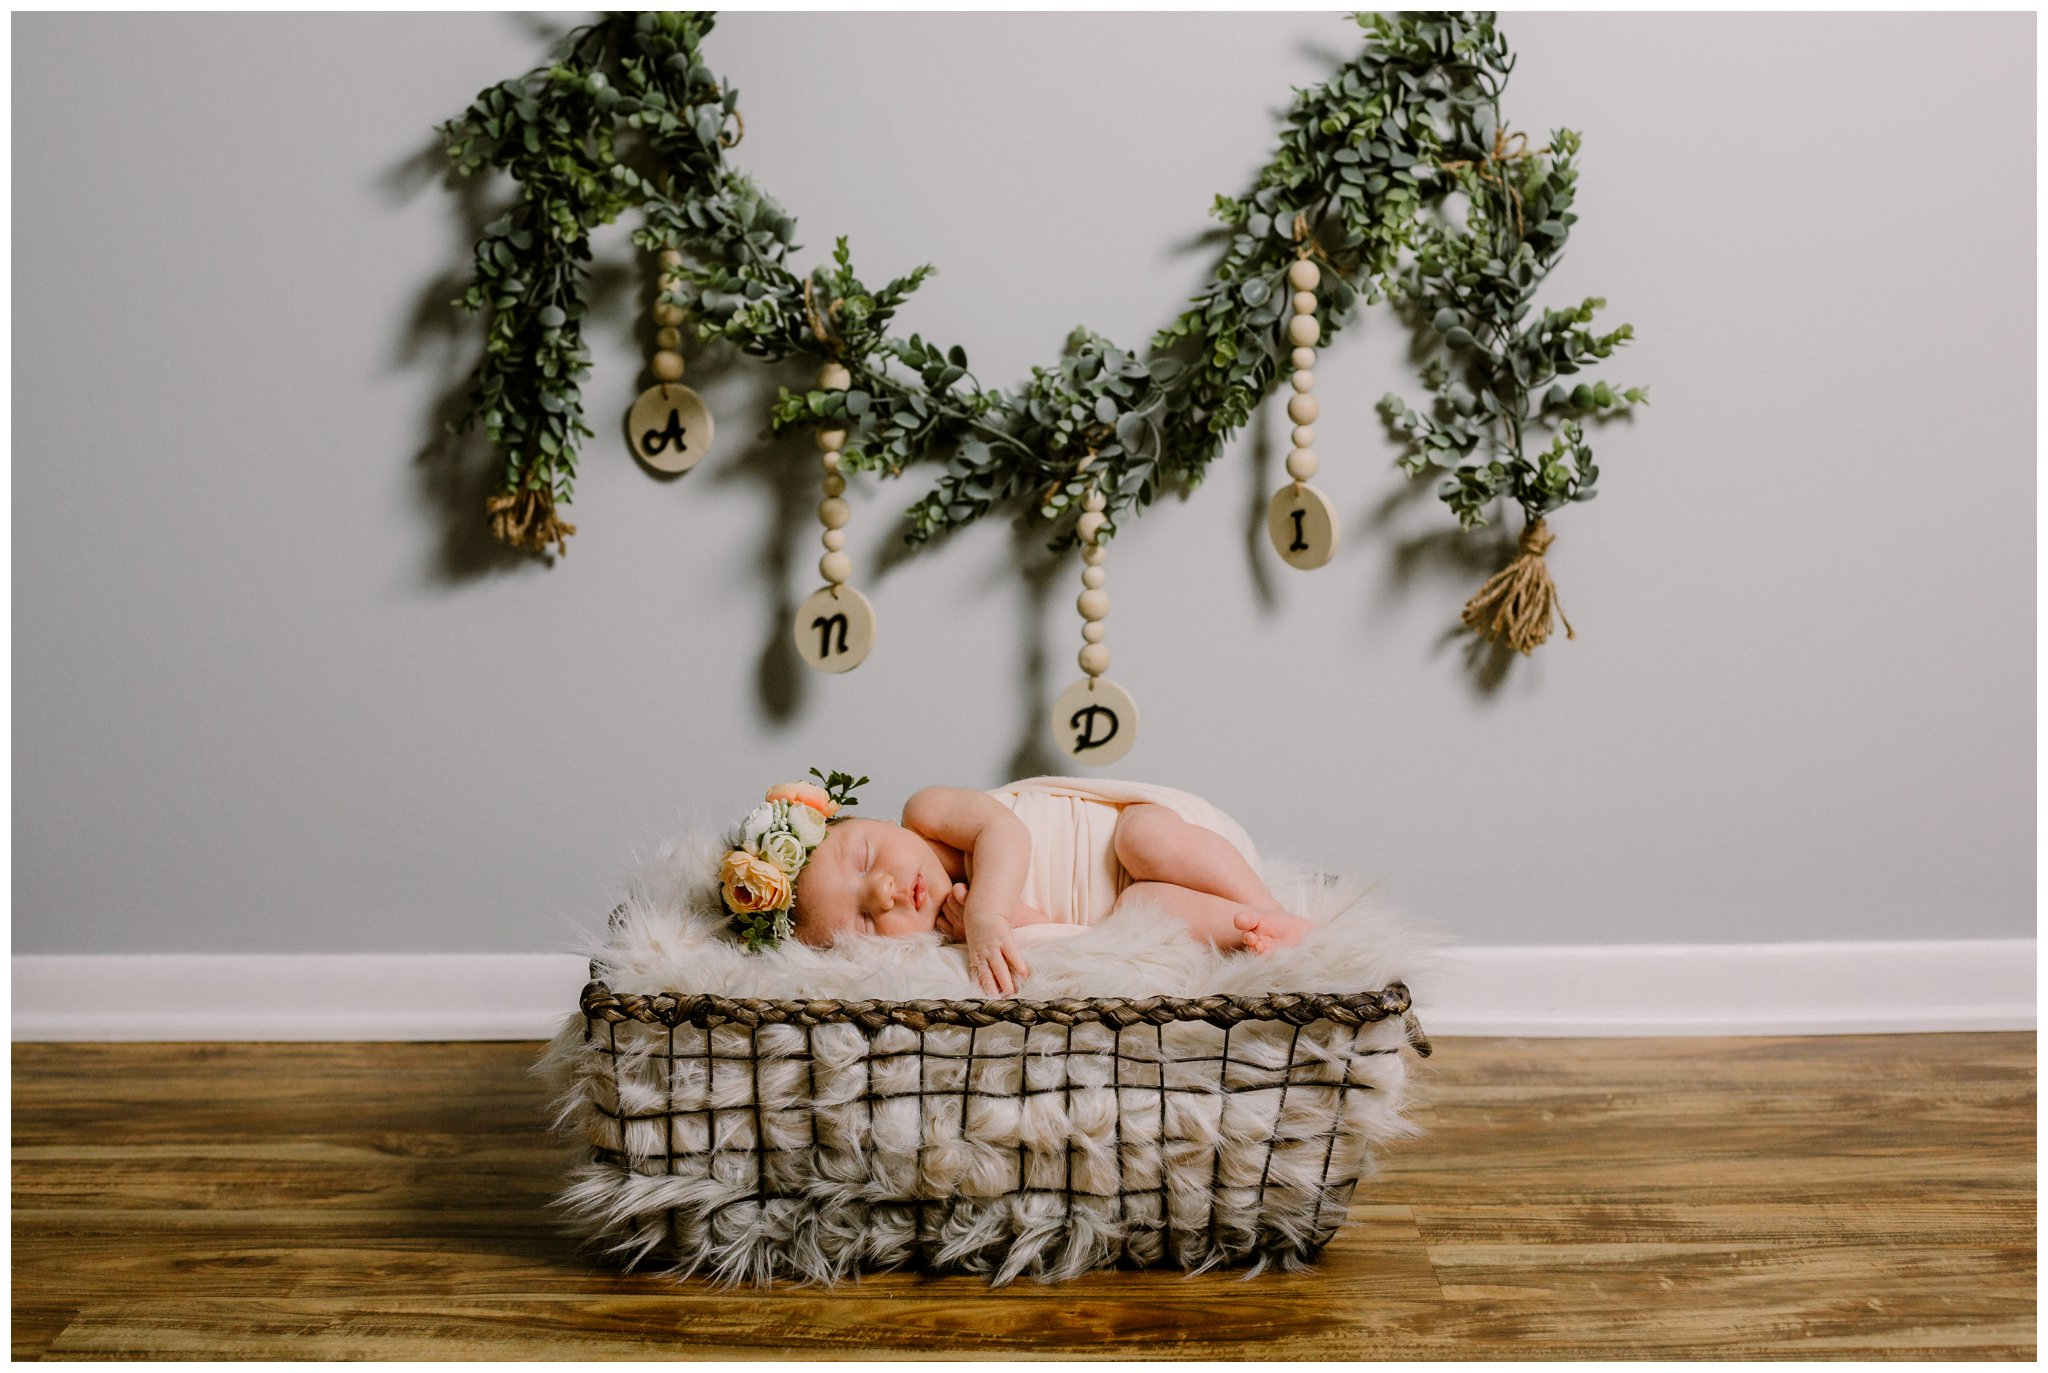 palm beach newborn photographer- south florida newborn photographers- jupiter family photographer- palm beach photographers- stuart florida photographers- palm beach- newborn photos_0003.jpg